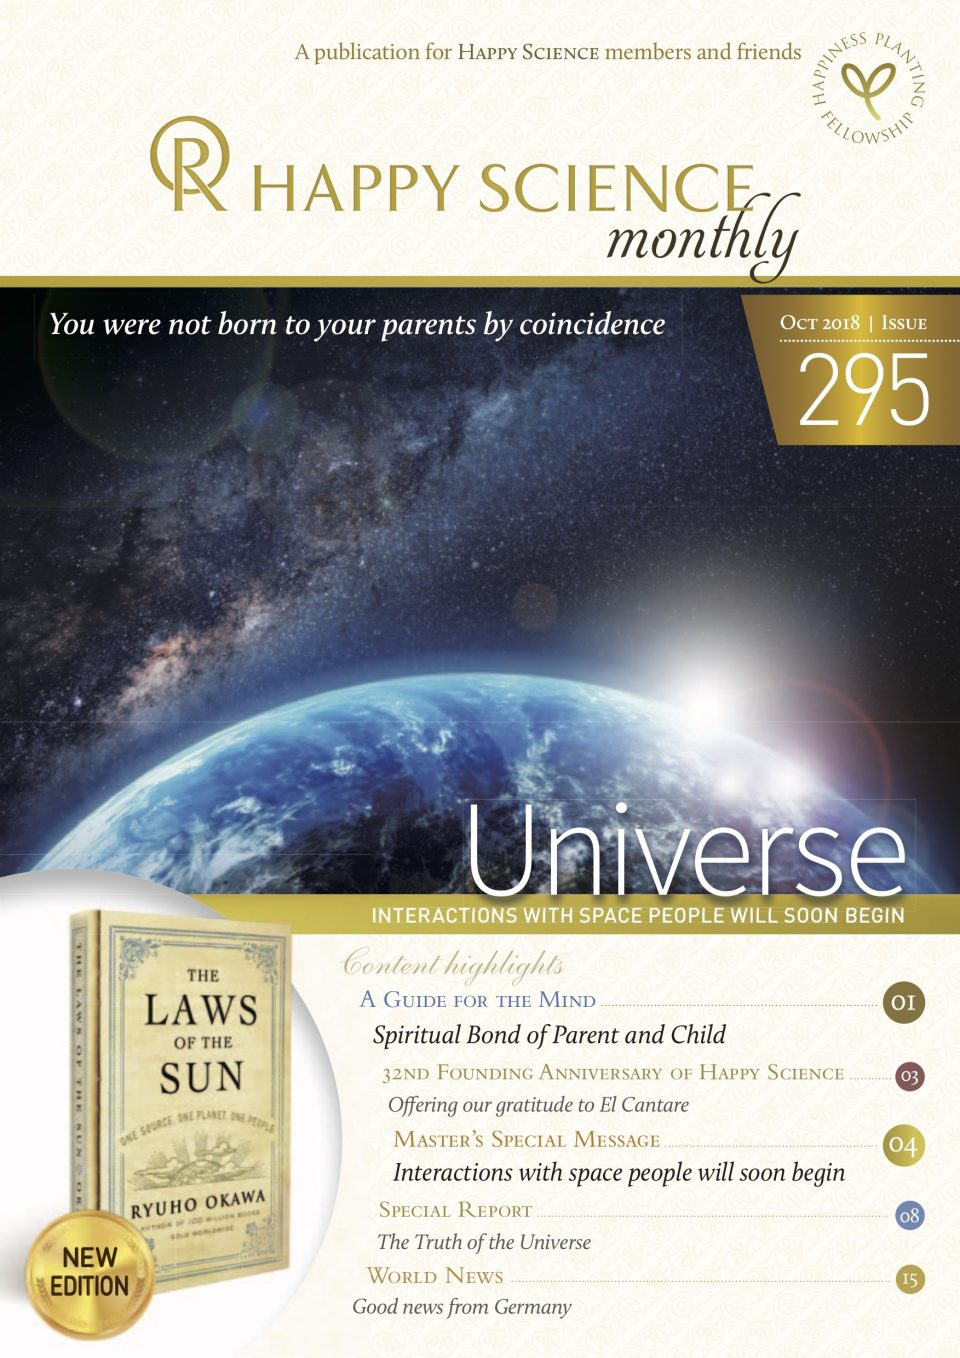 HAPPY SCIENCE Monthly 295 is released!